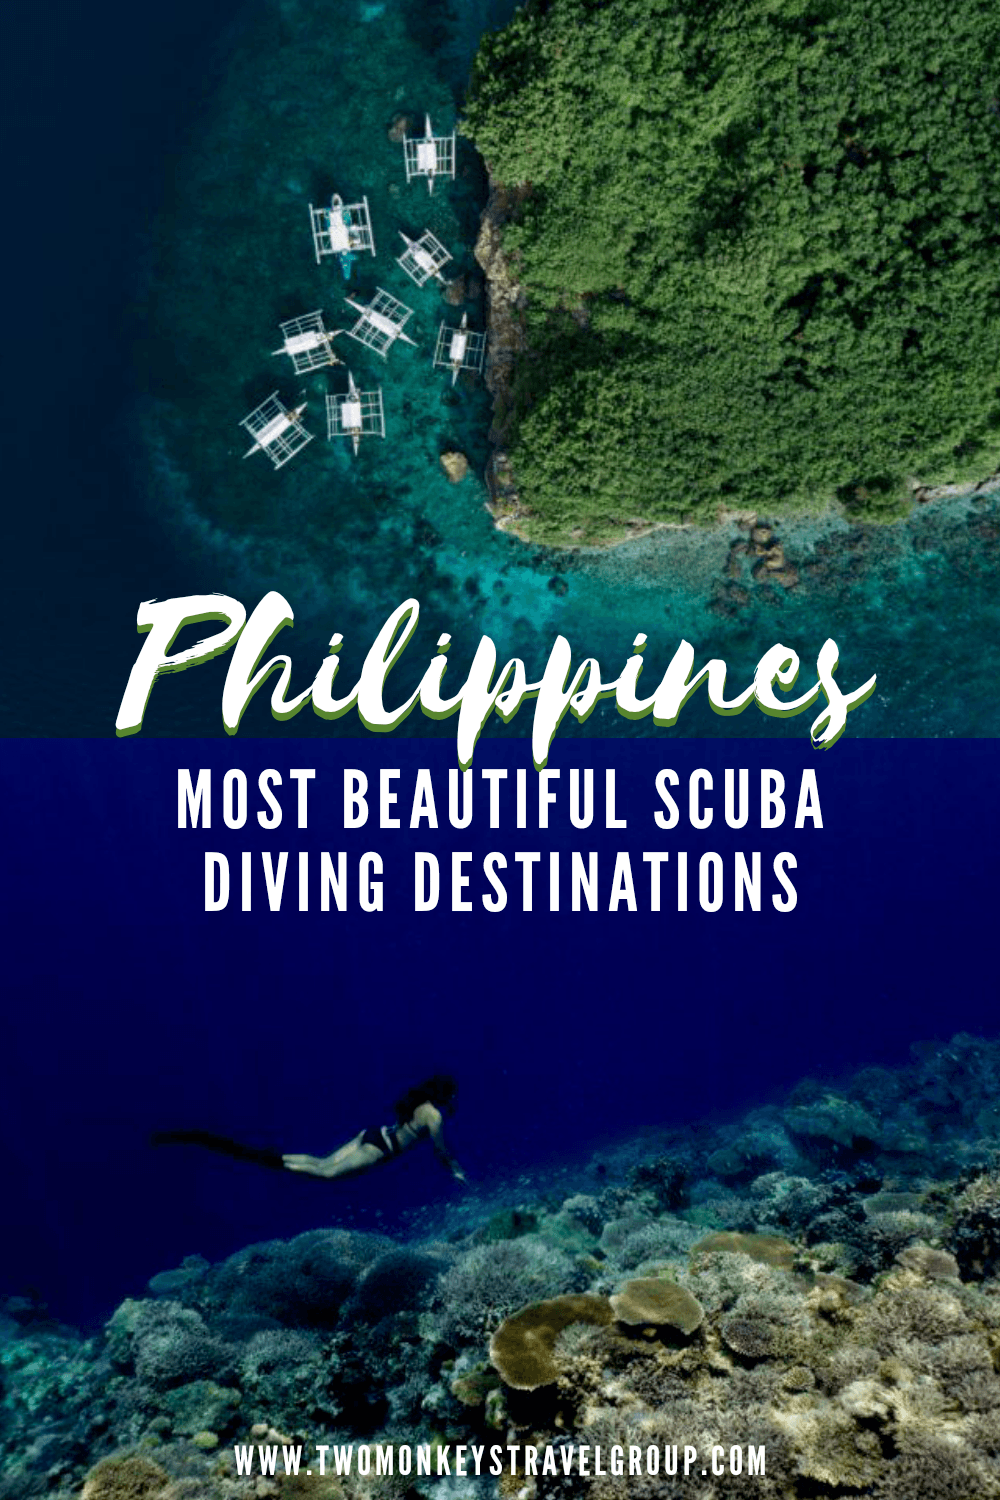 Top 7 Most Beautiful Scuba Diving Destinations in the Philippines